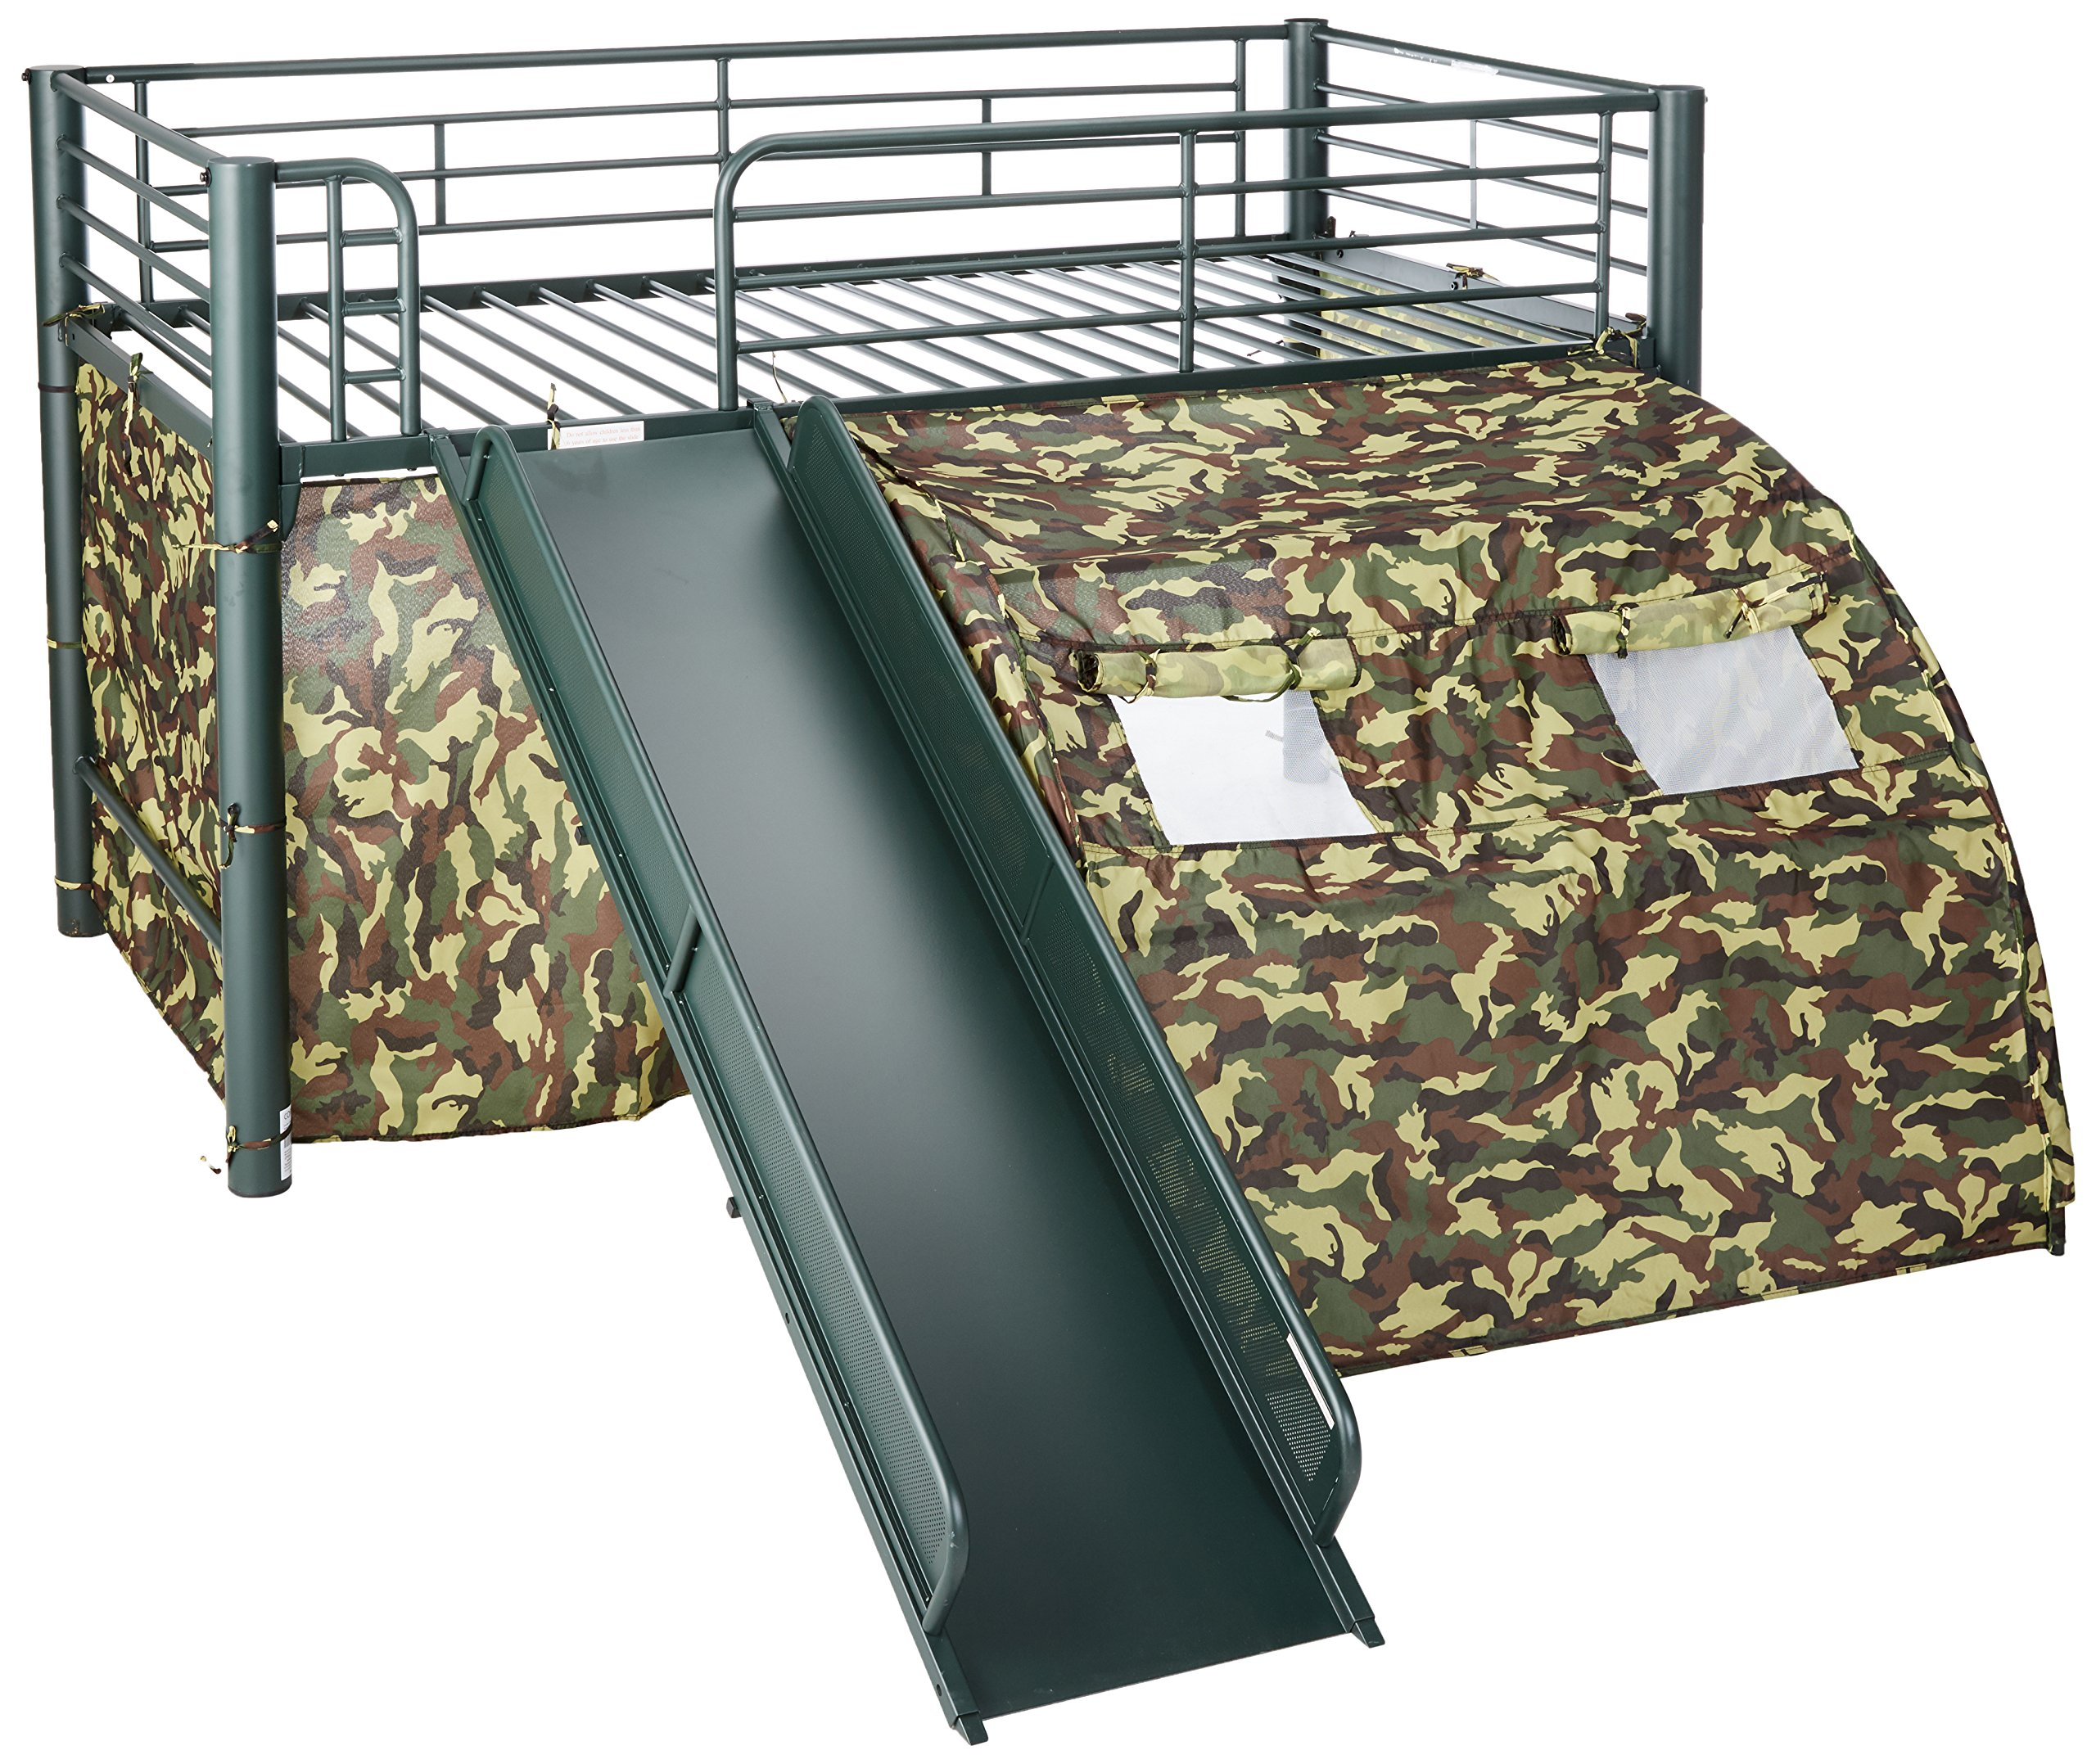 Coaster Home Furnishings  Kids Camo Tent Twin Loft Bunk Bed with Slide - Camouflauge by Coaster Home Furnishings